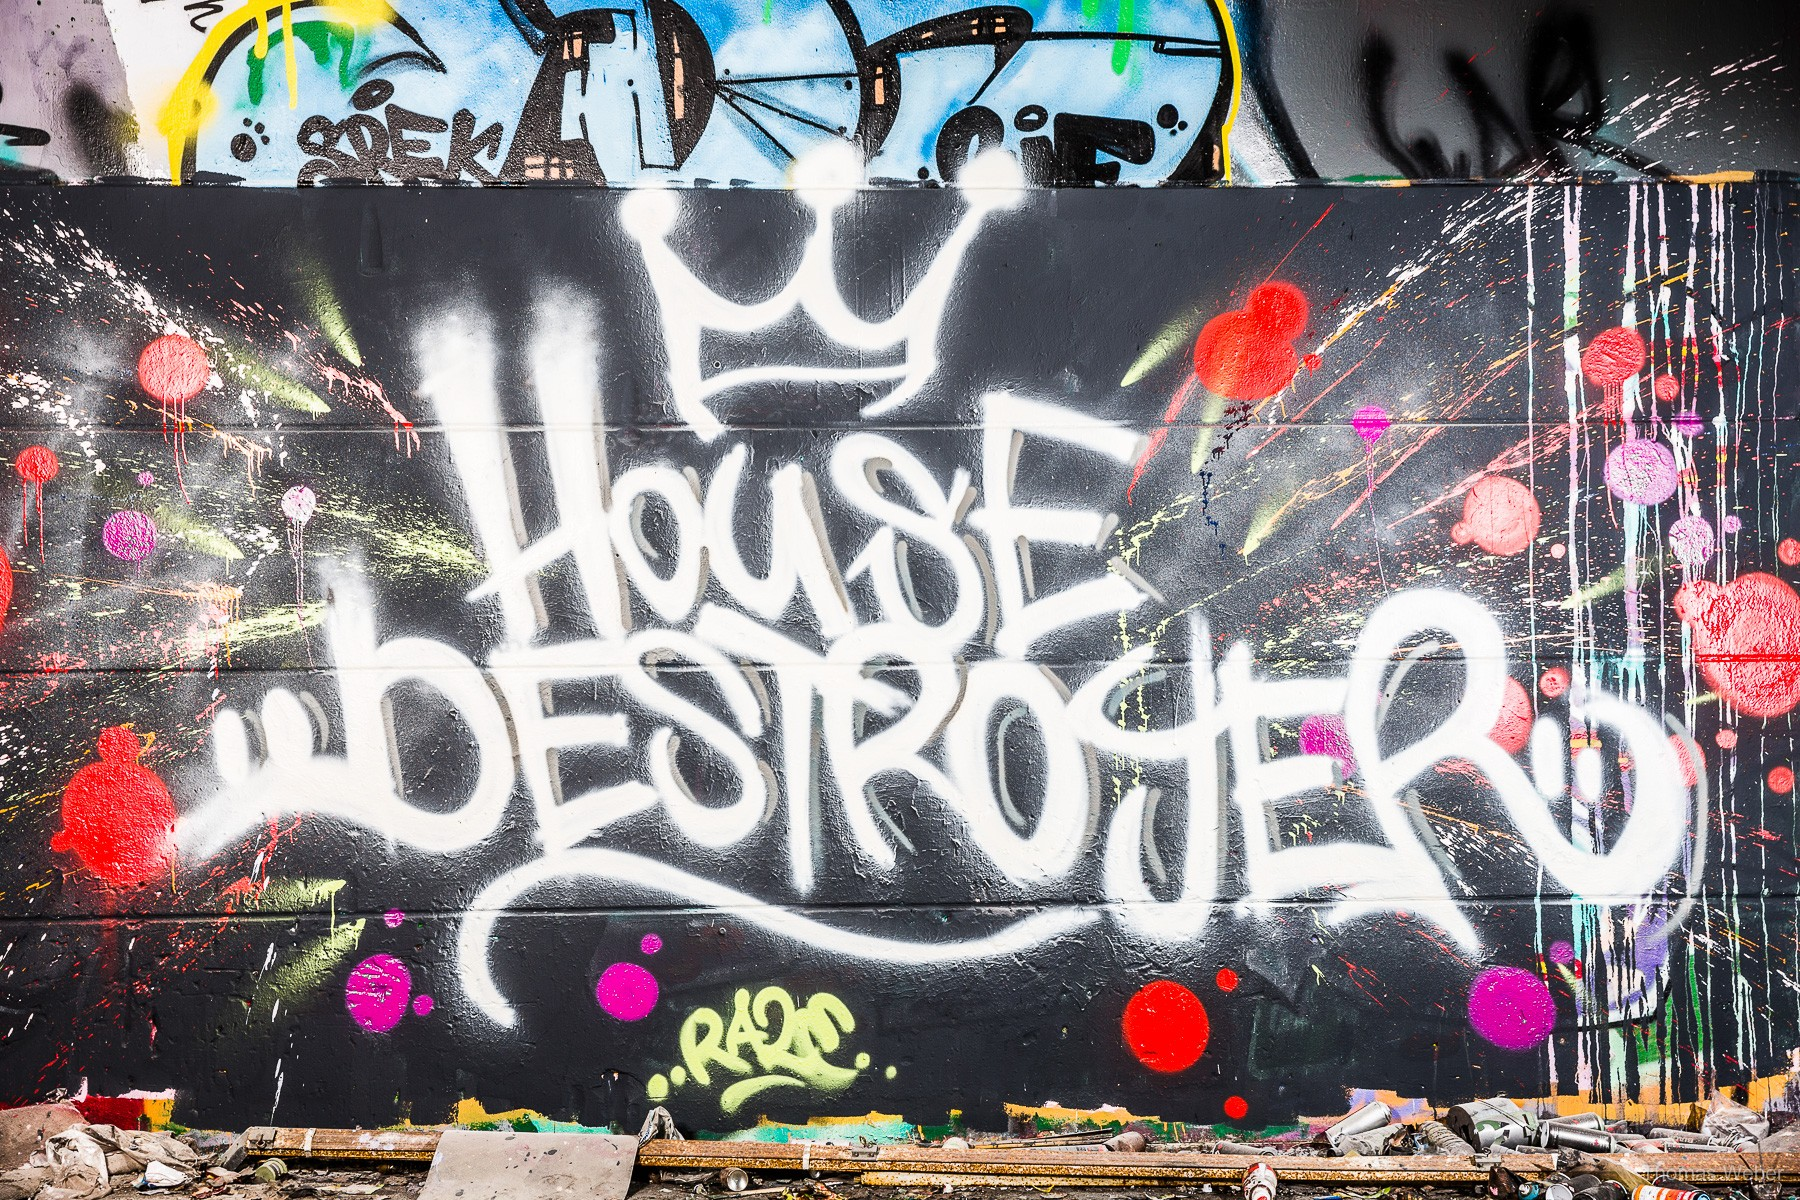 Pressefotos der Housedestroyer, Fotograf Thomas Weber aus Oldenburg